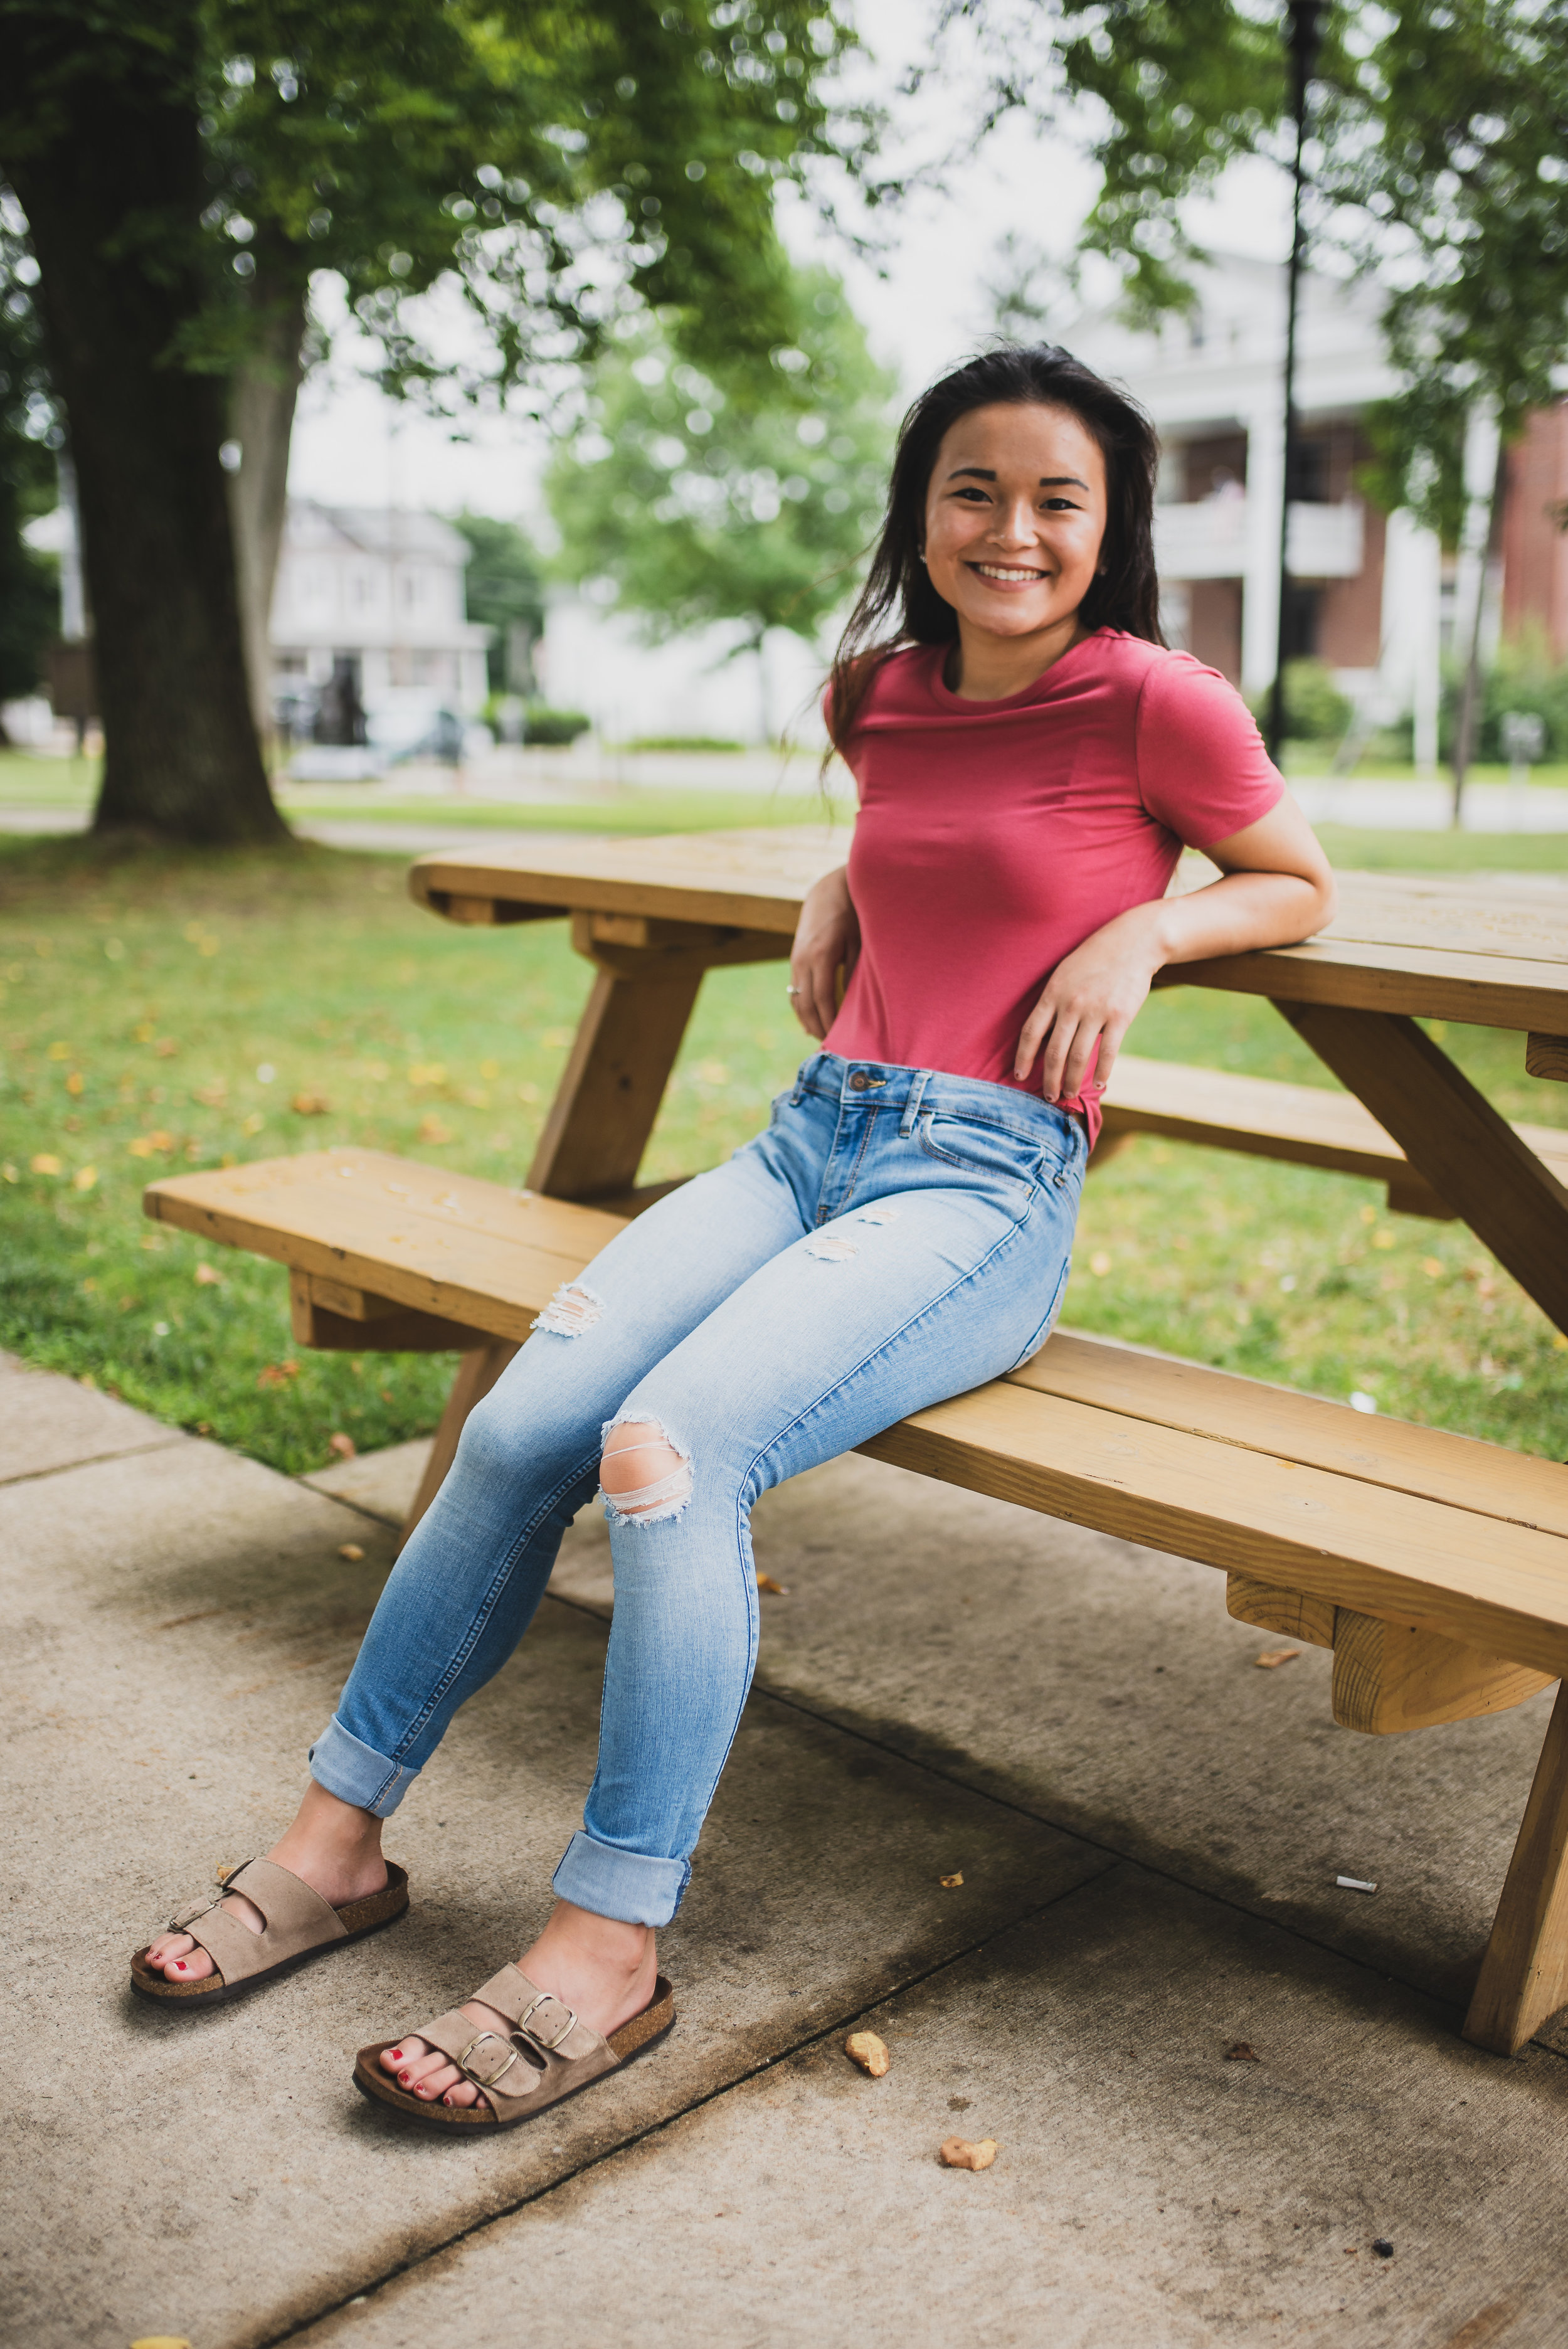 Clarion PA town square portrait on a bench